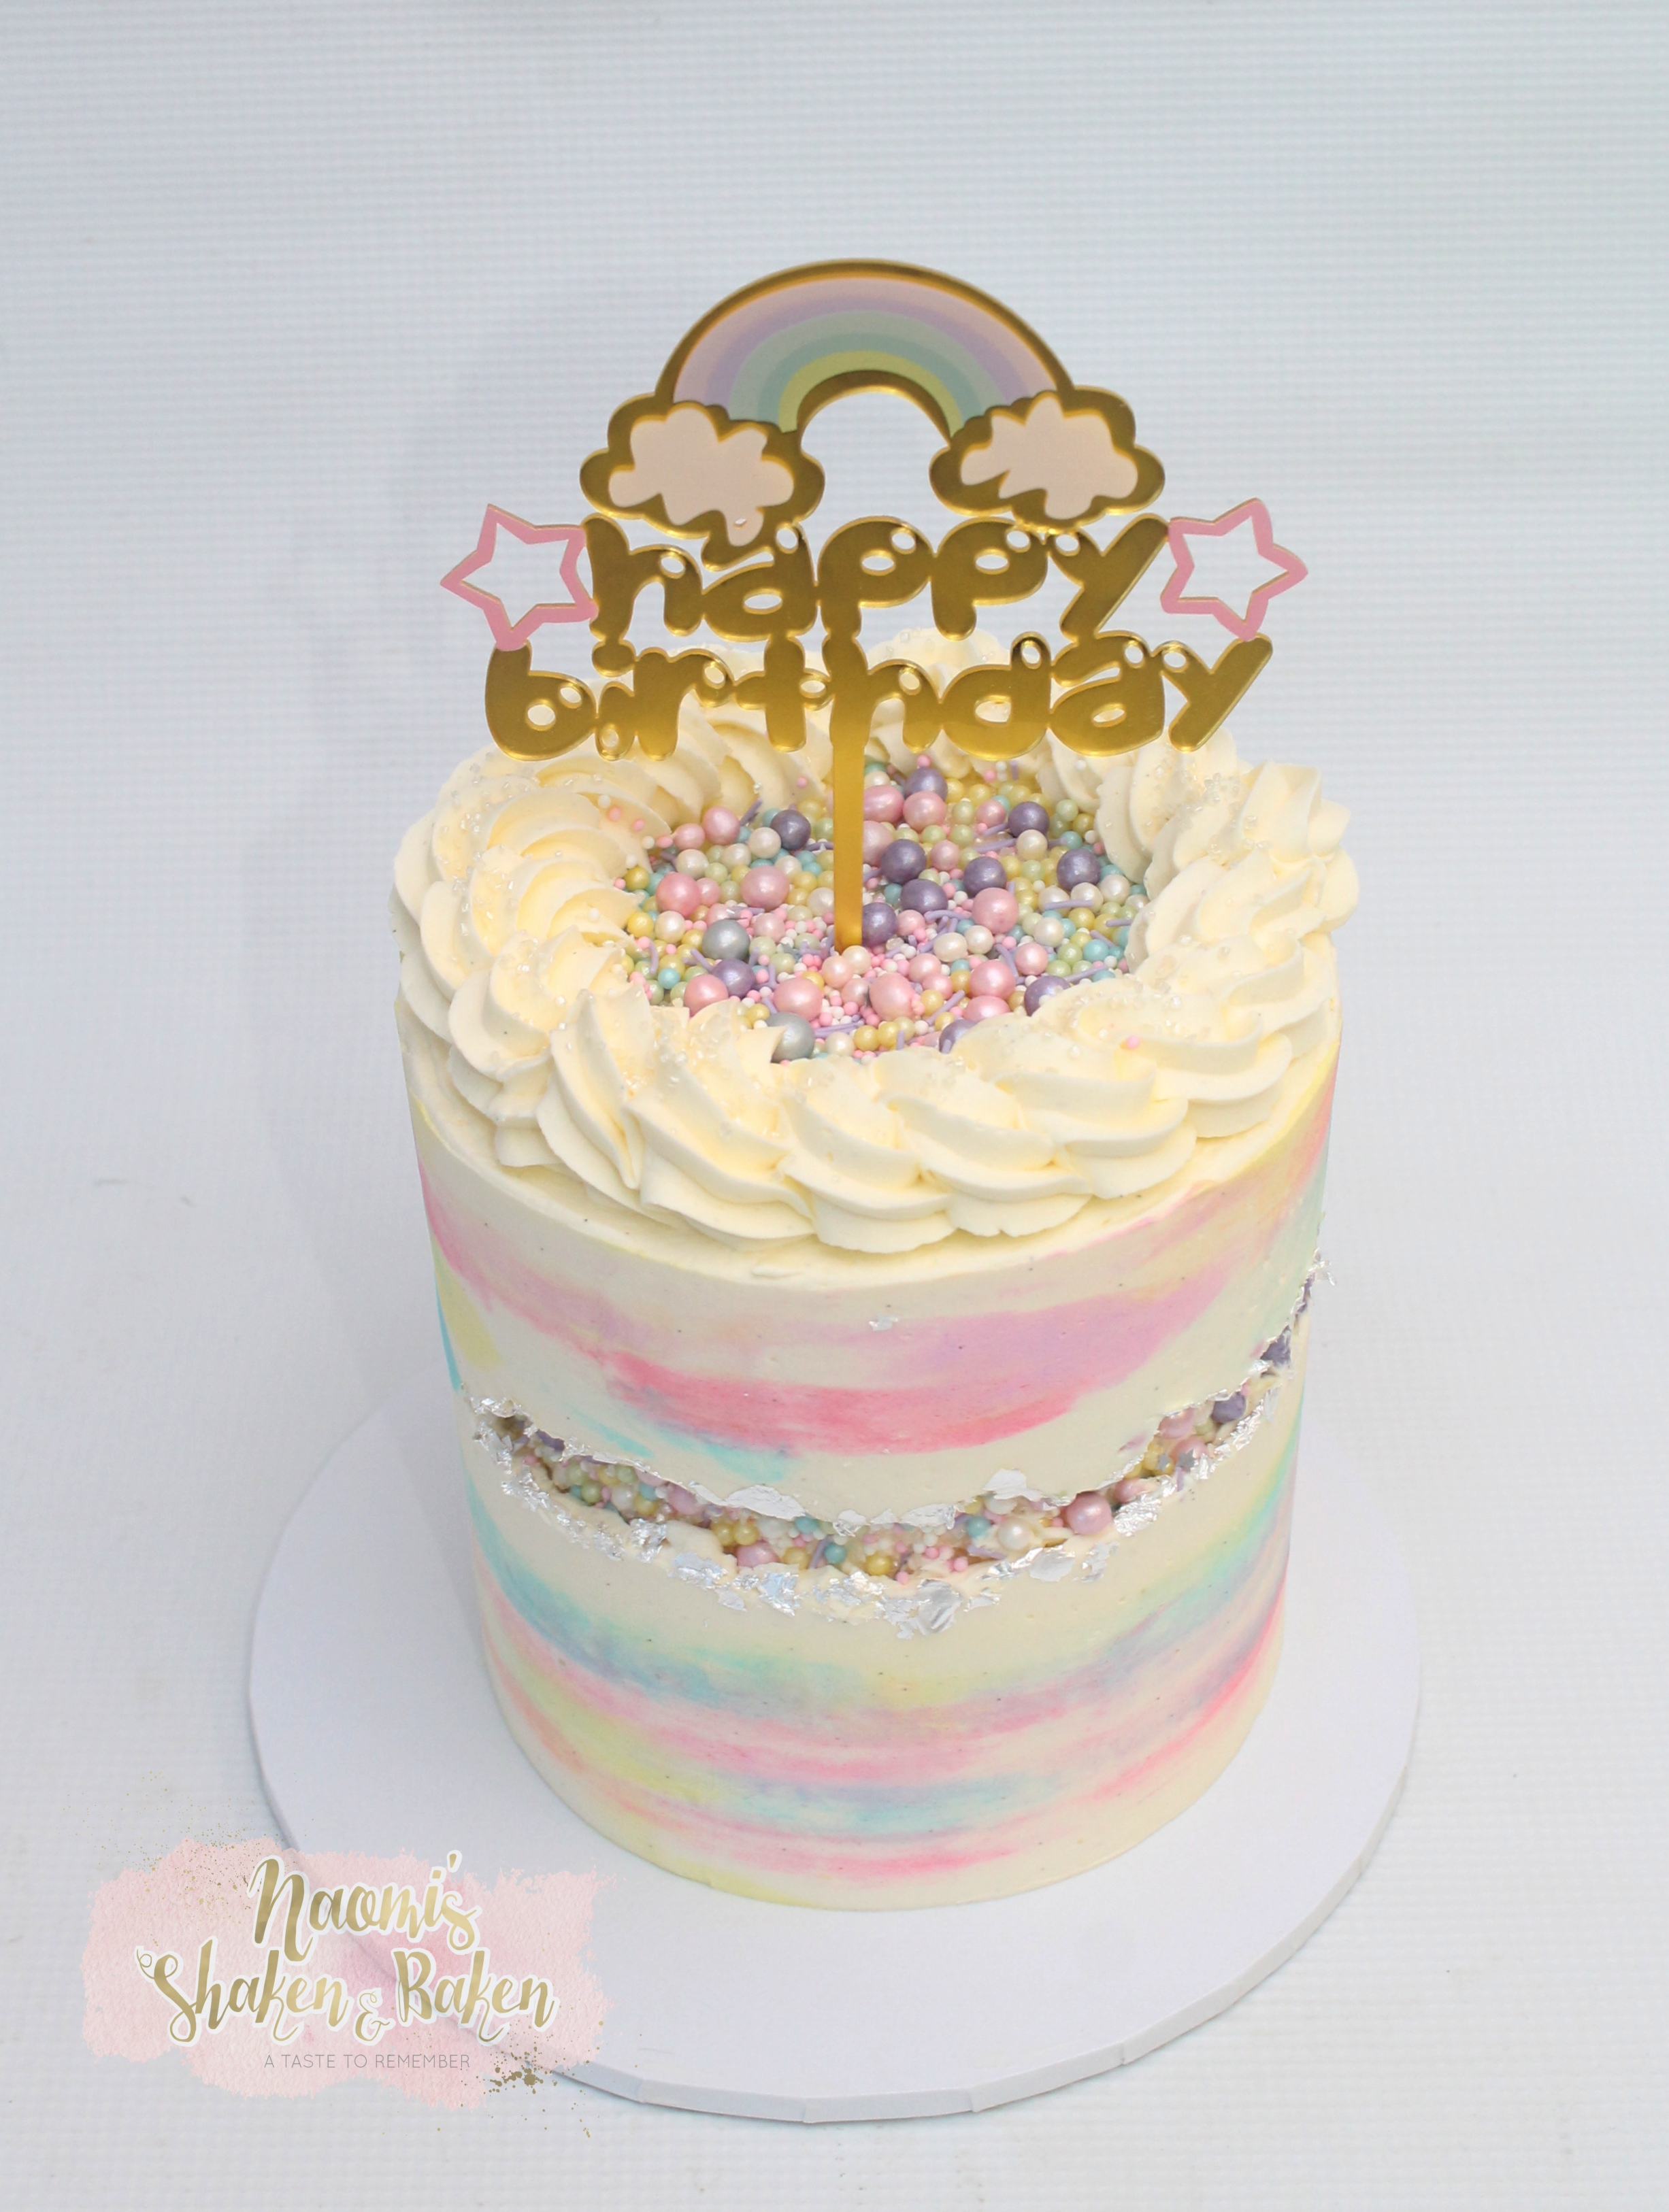 Cool Naomis Shaken Baken Caboolture Custom Cakes For All Events Funny Birthday Cards Online Unhofree Goldxyz